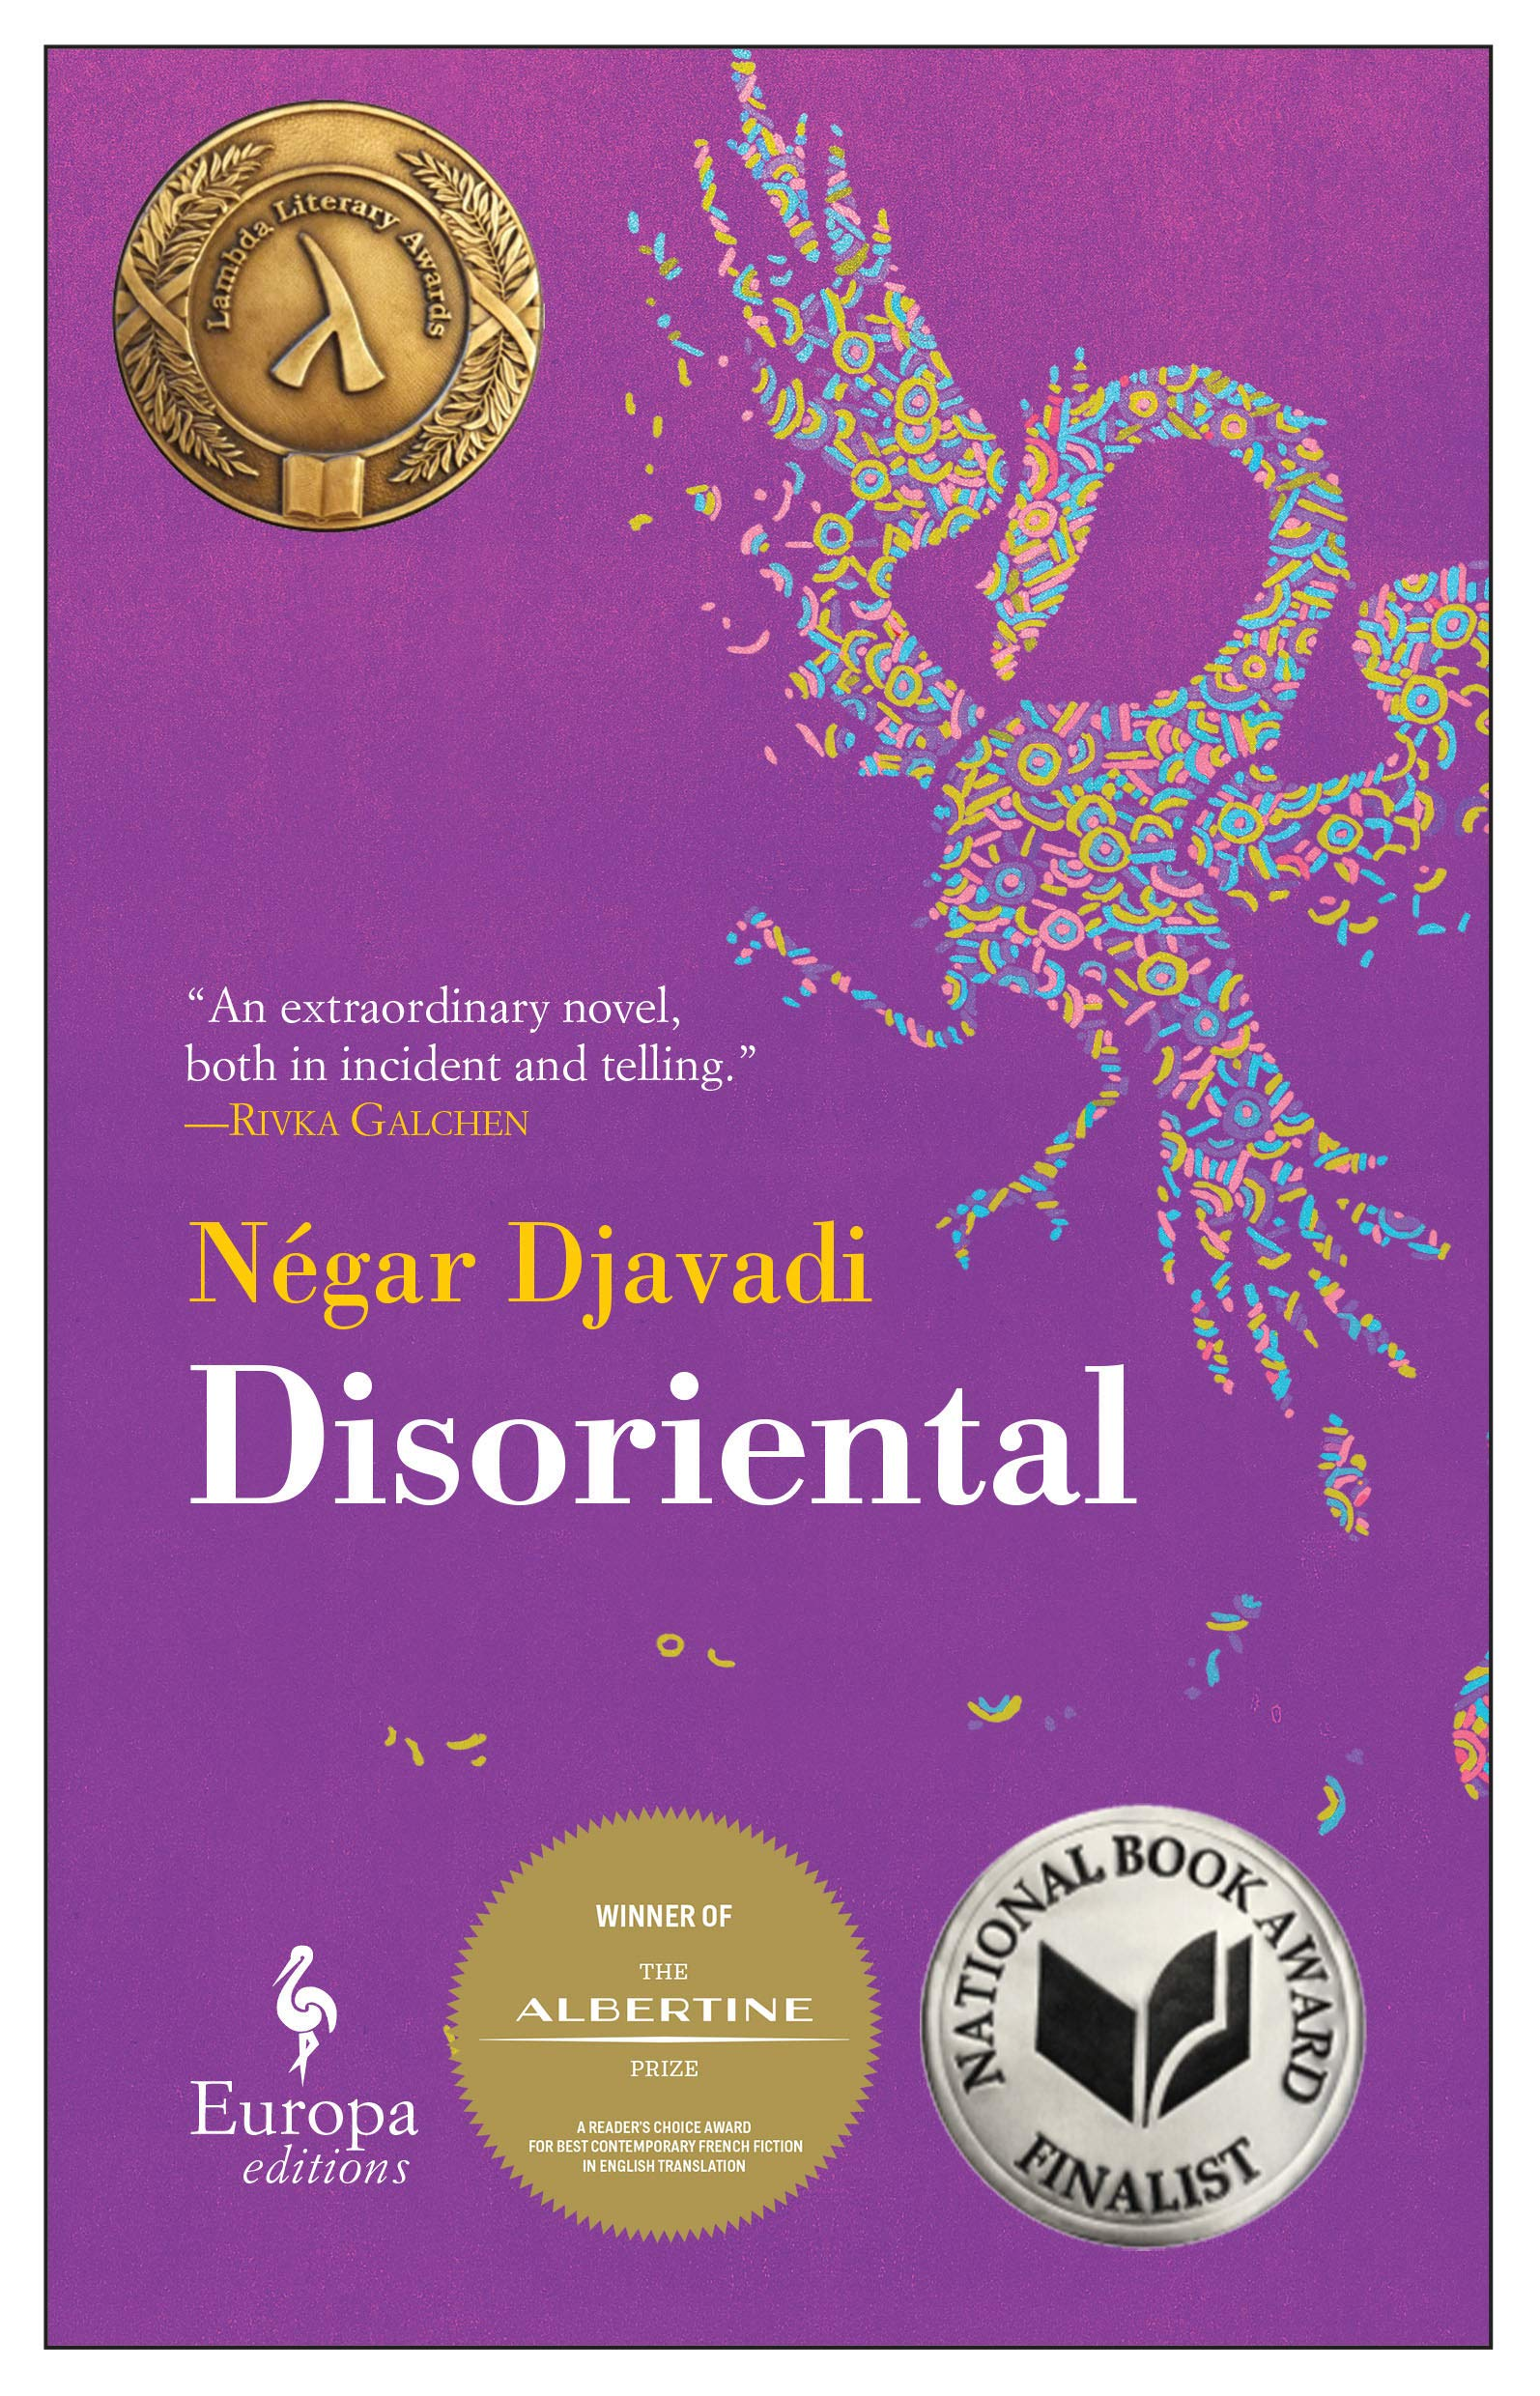 Disoriental: Amazon.ca: Djavadi, Negar, Kover, Tina: Books